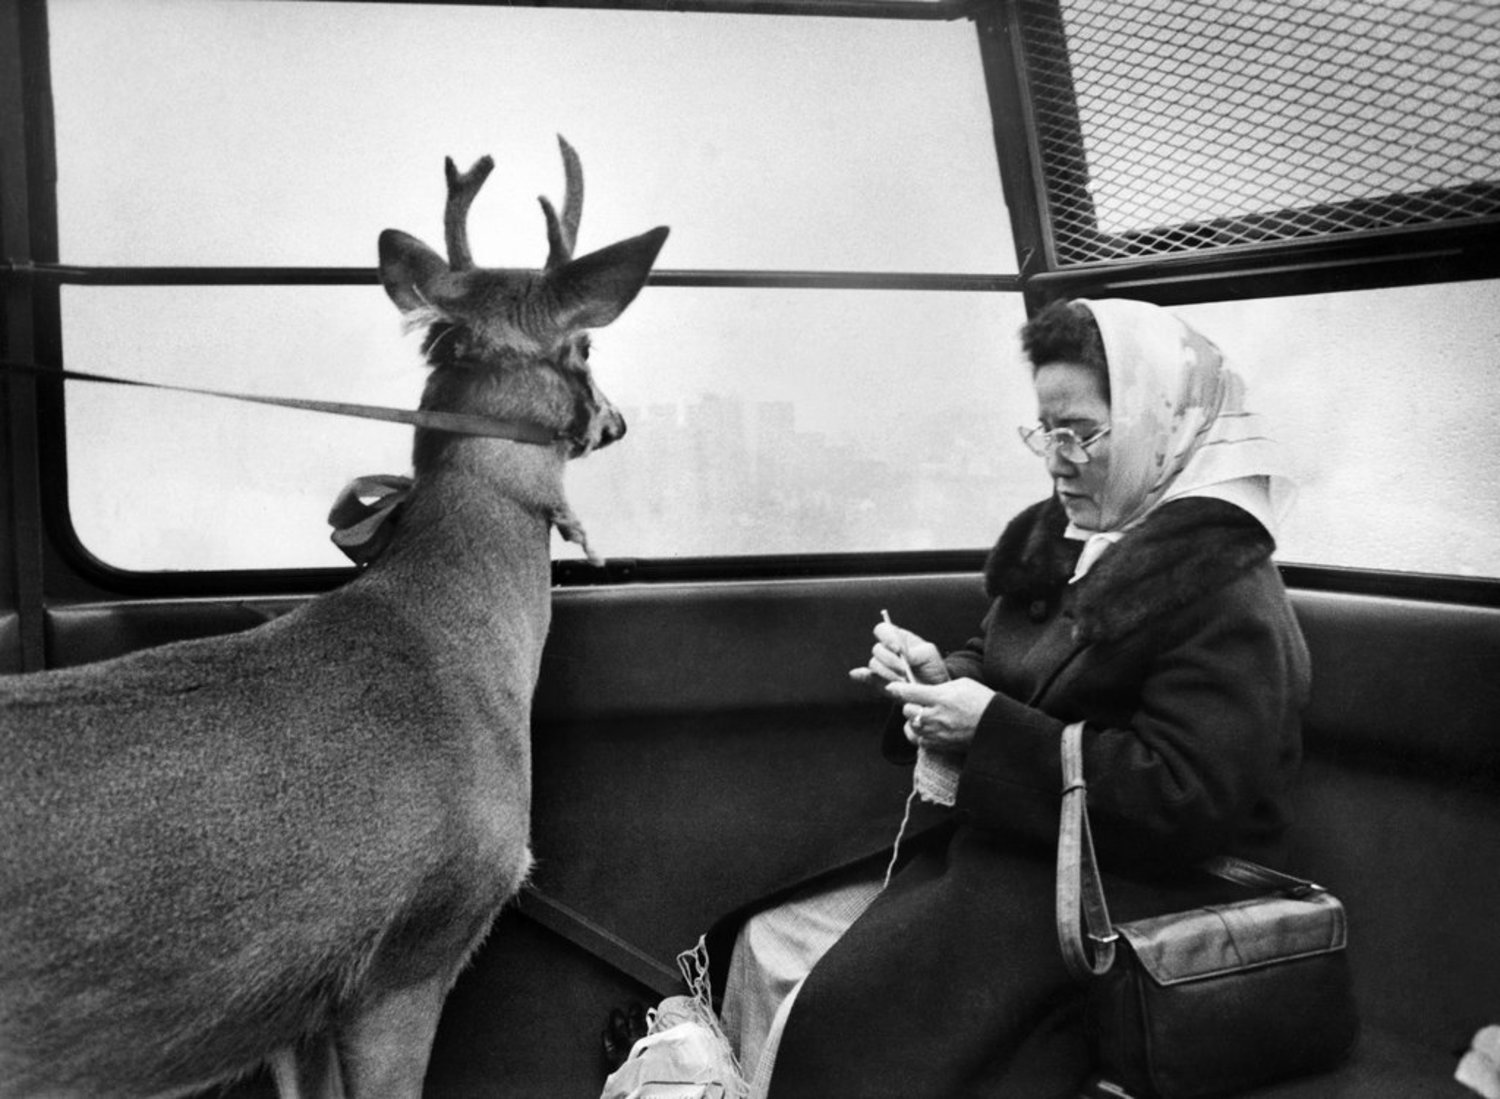 Dec. 3, 1977: The view from the Roosevelt Island tram was enchanting for one passenger, ho-hum for another. Also ho-hum: that the other passenger happened to be a reindeer.